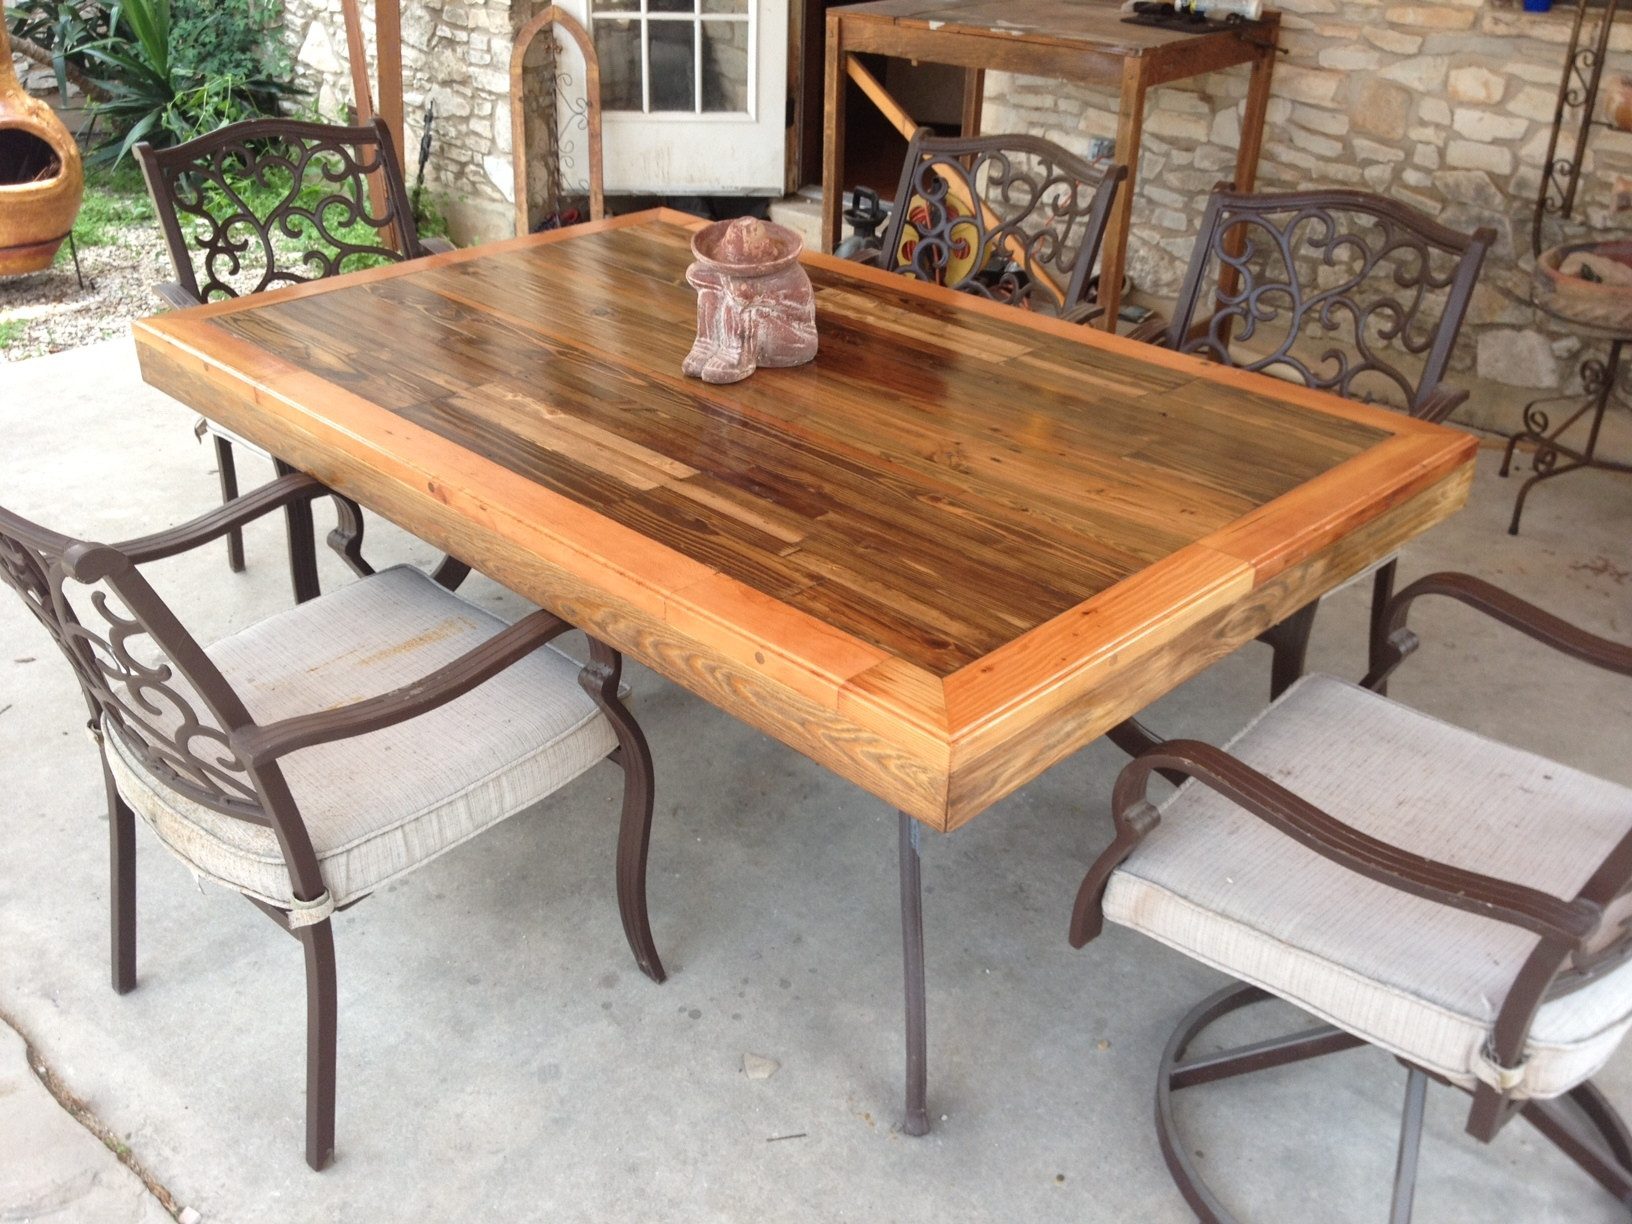 DIY Outdoor Wooden Table  Patio Tabletop Made From Reclaimed Deck Wood